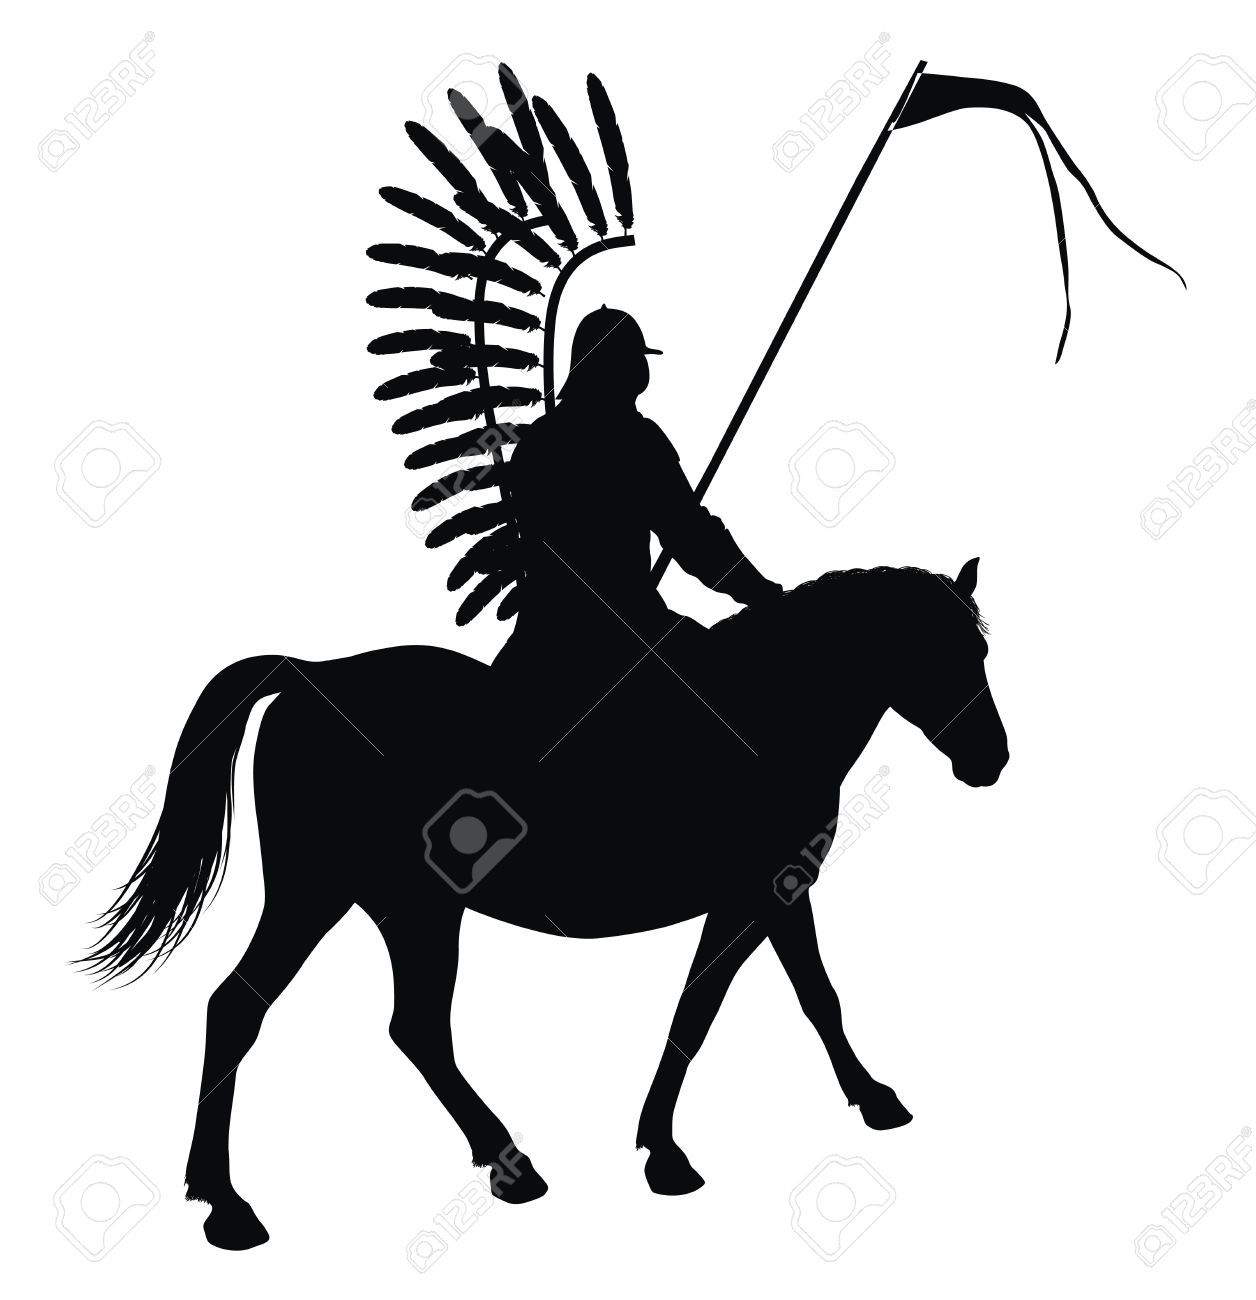 1256x1300 Medieval Warrior With Flag On Horseback Detailed Vector Silhouette